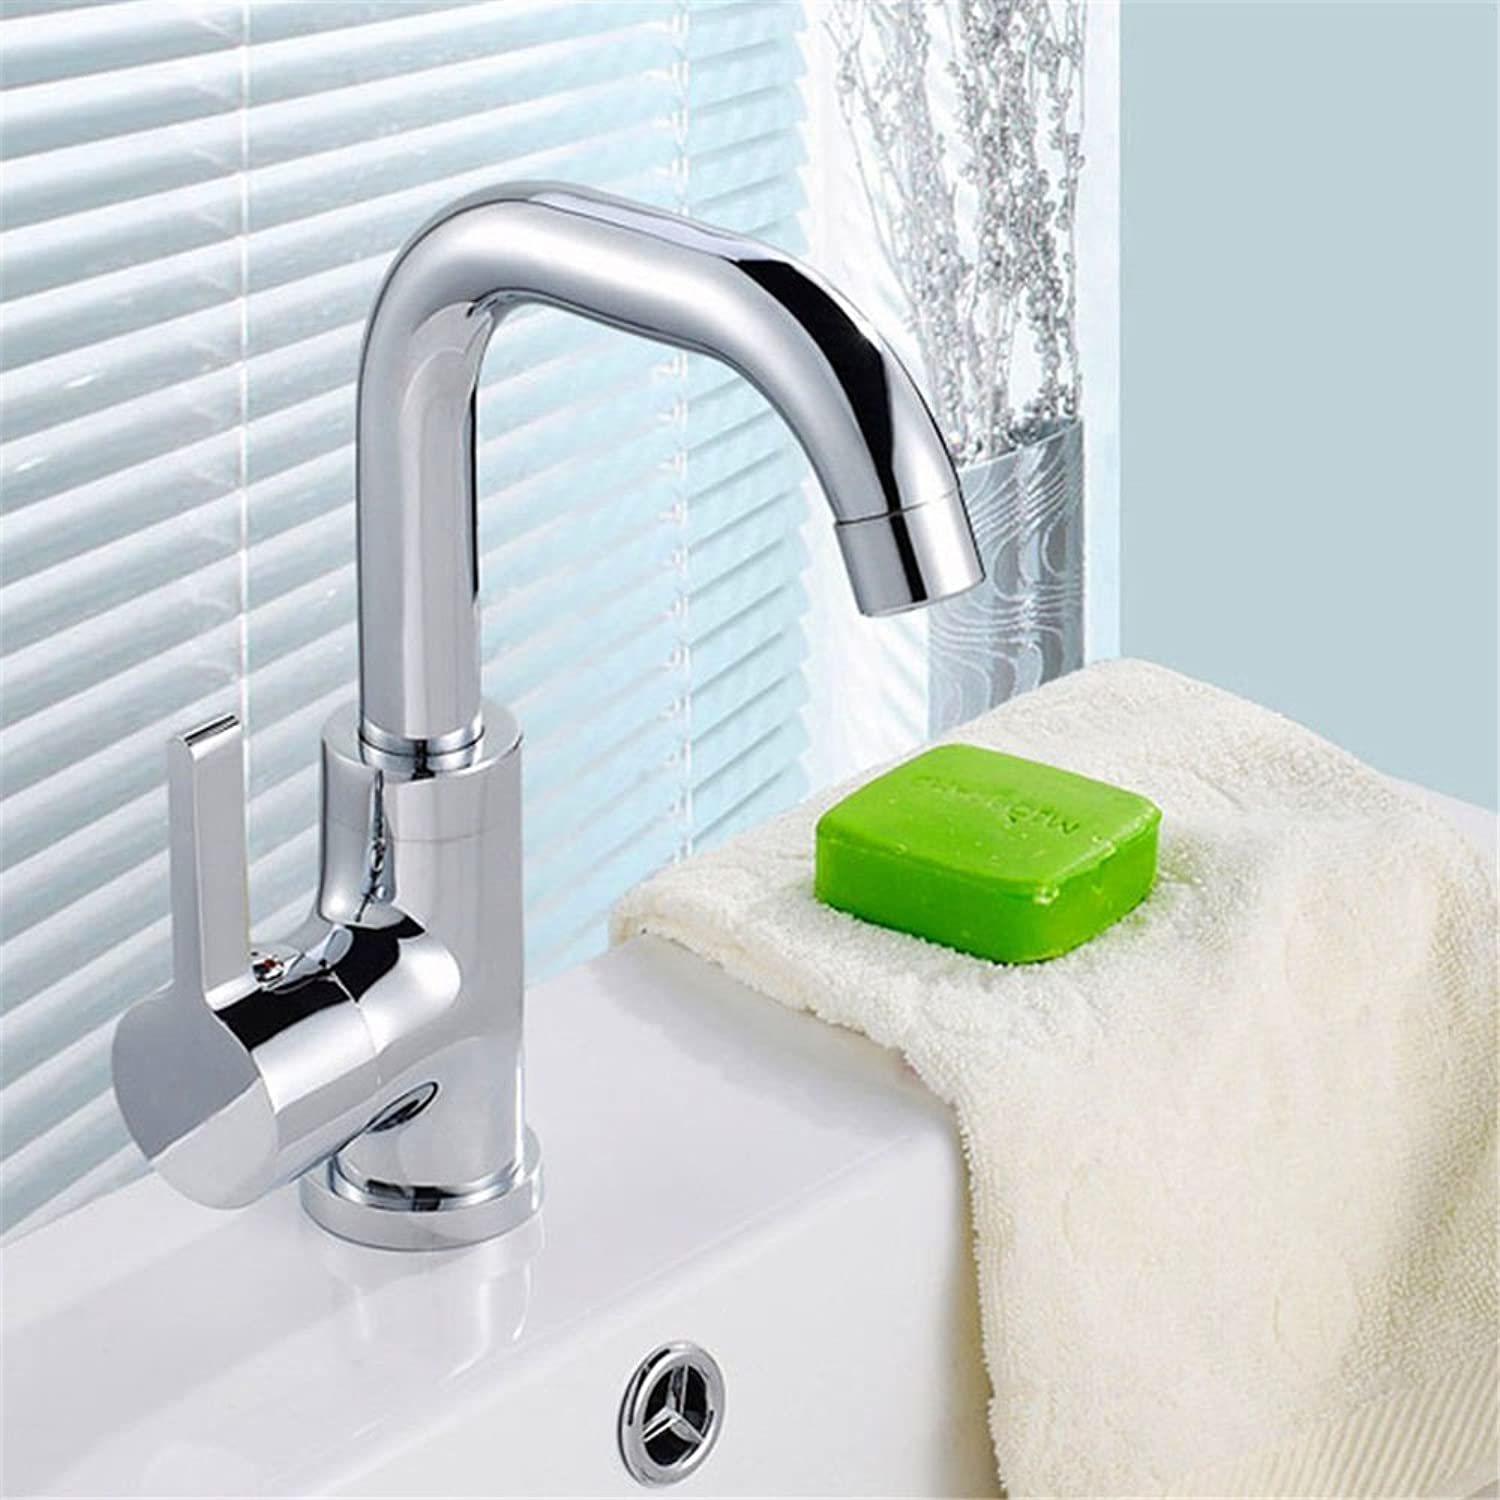 Oudan Basin Mixer Tap Bathroom Sink Faucet The copper basin faucet single hole faucet hot and cold water nozzle 360 degrees.